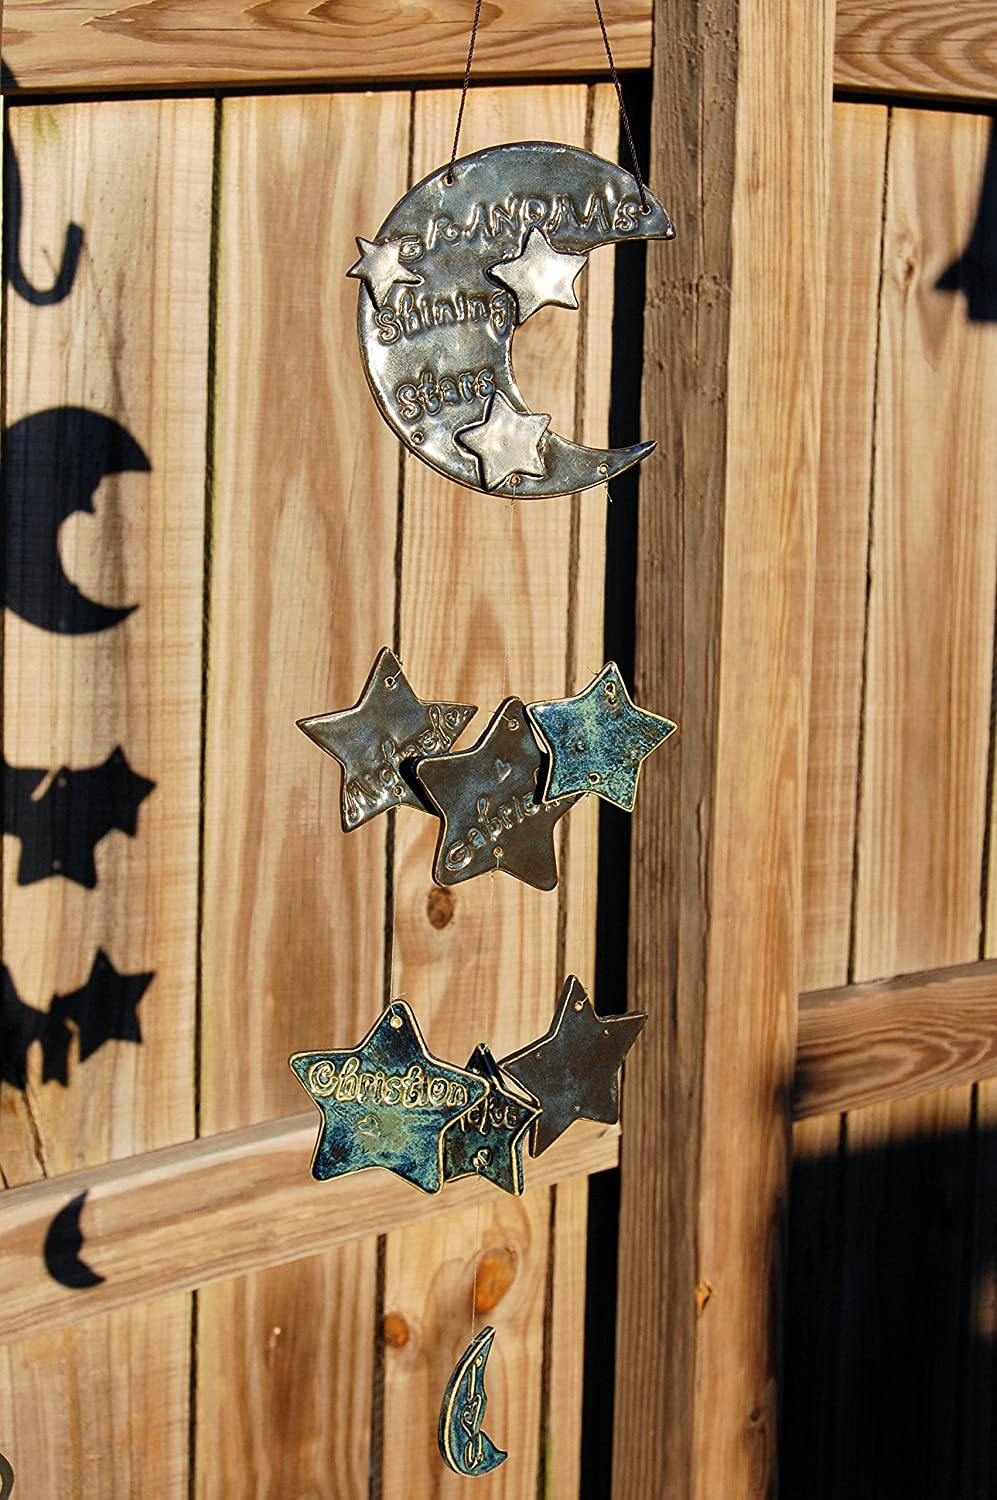 B016CDY2SY Grandma's Shining Stars Custom Wind Chime--Made to Order 912Clr5Bc2L